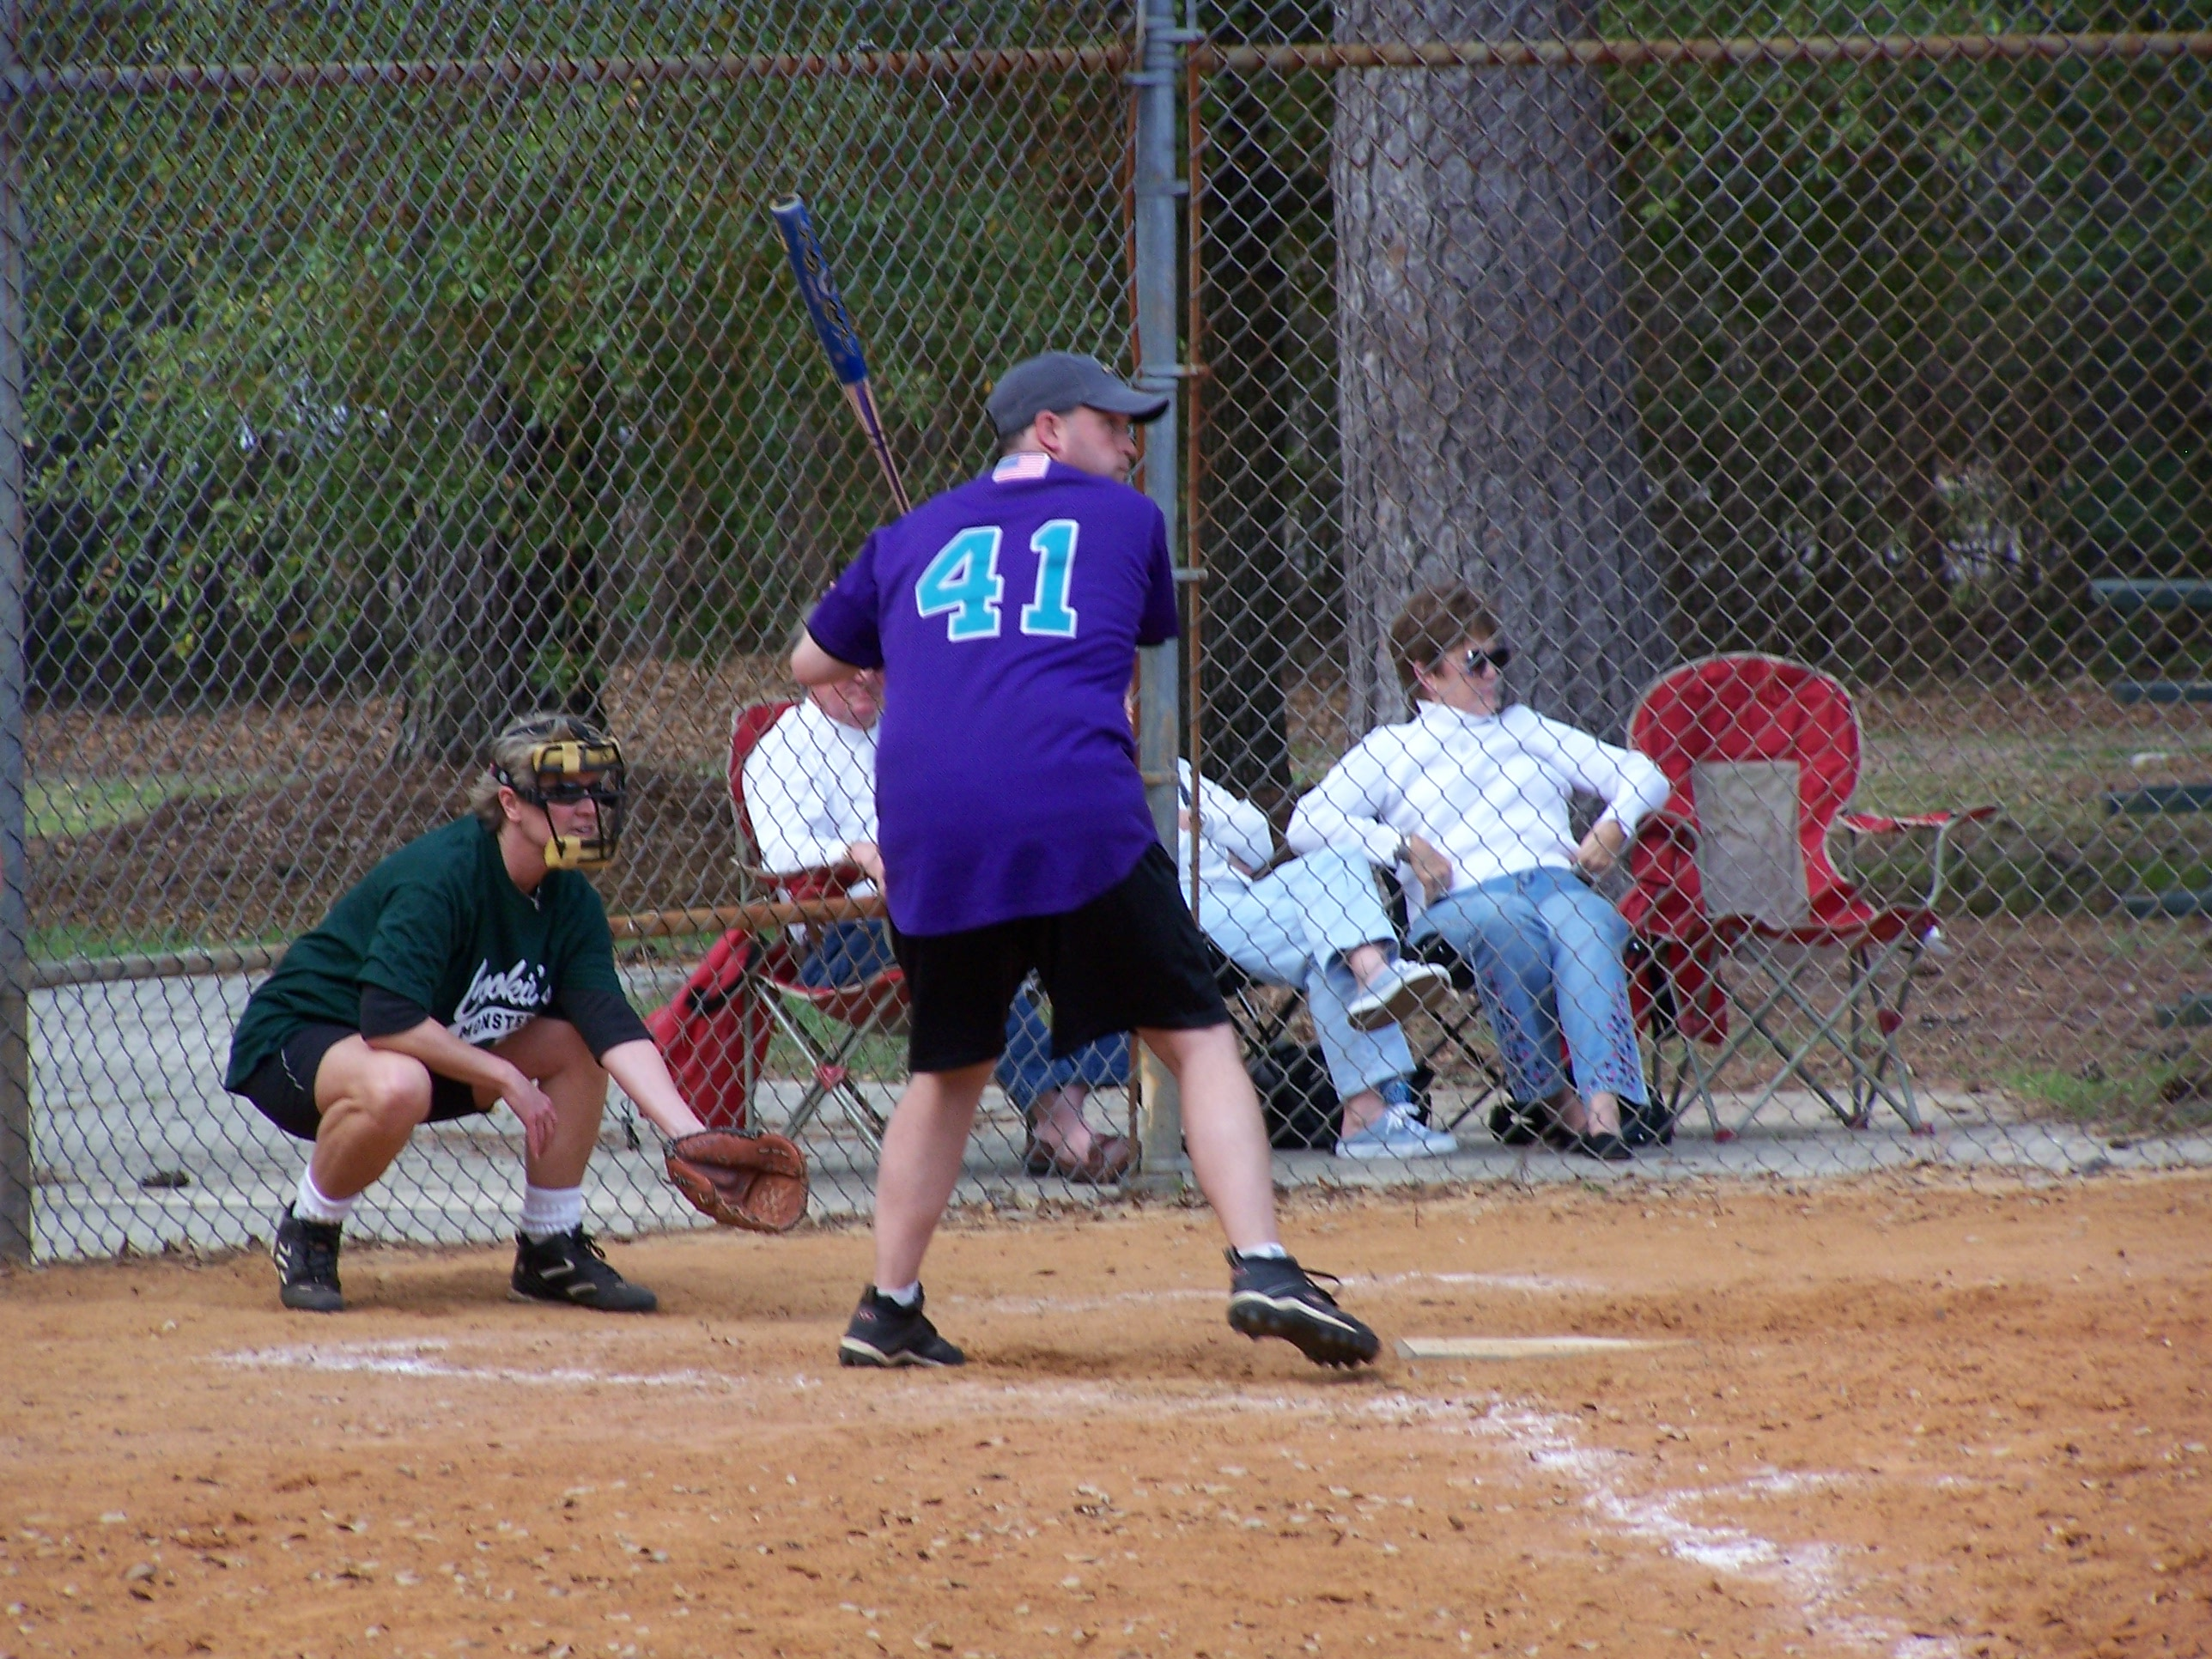 Man at base about to swing playing softball